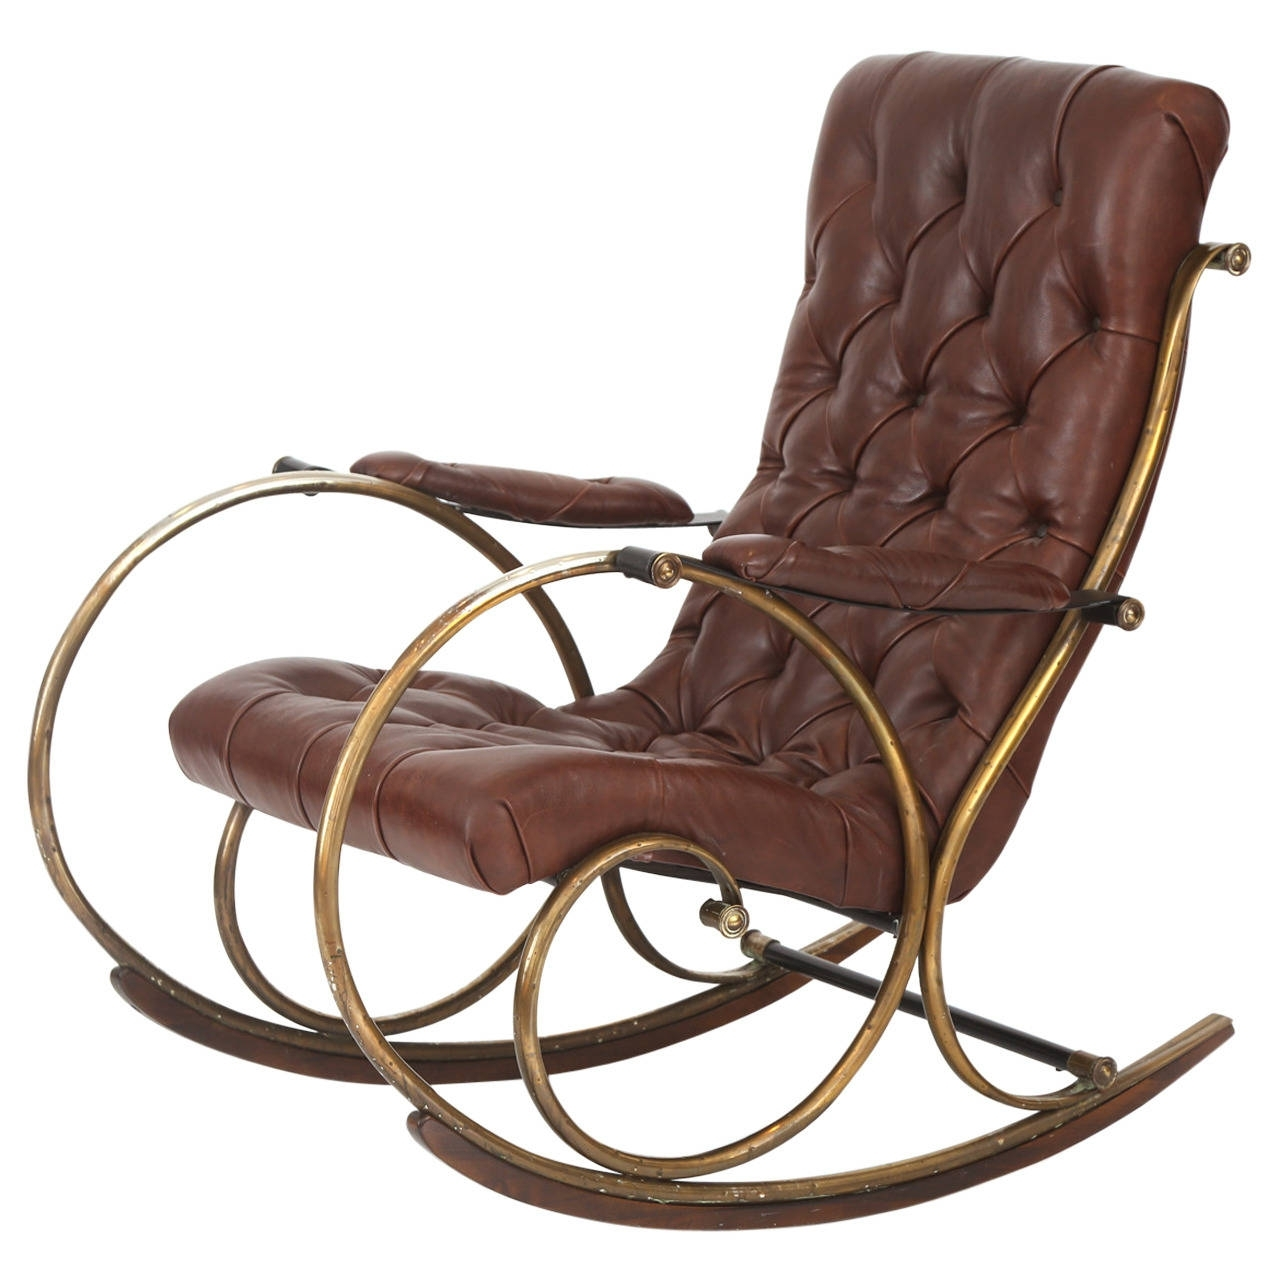 Leather Brass And Wood Rocking Chairwoodard For Sale At 1stdibs For Patio Wooden Rocking Chairs (View 9 of 15)